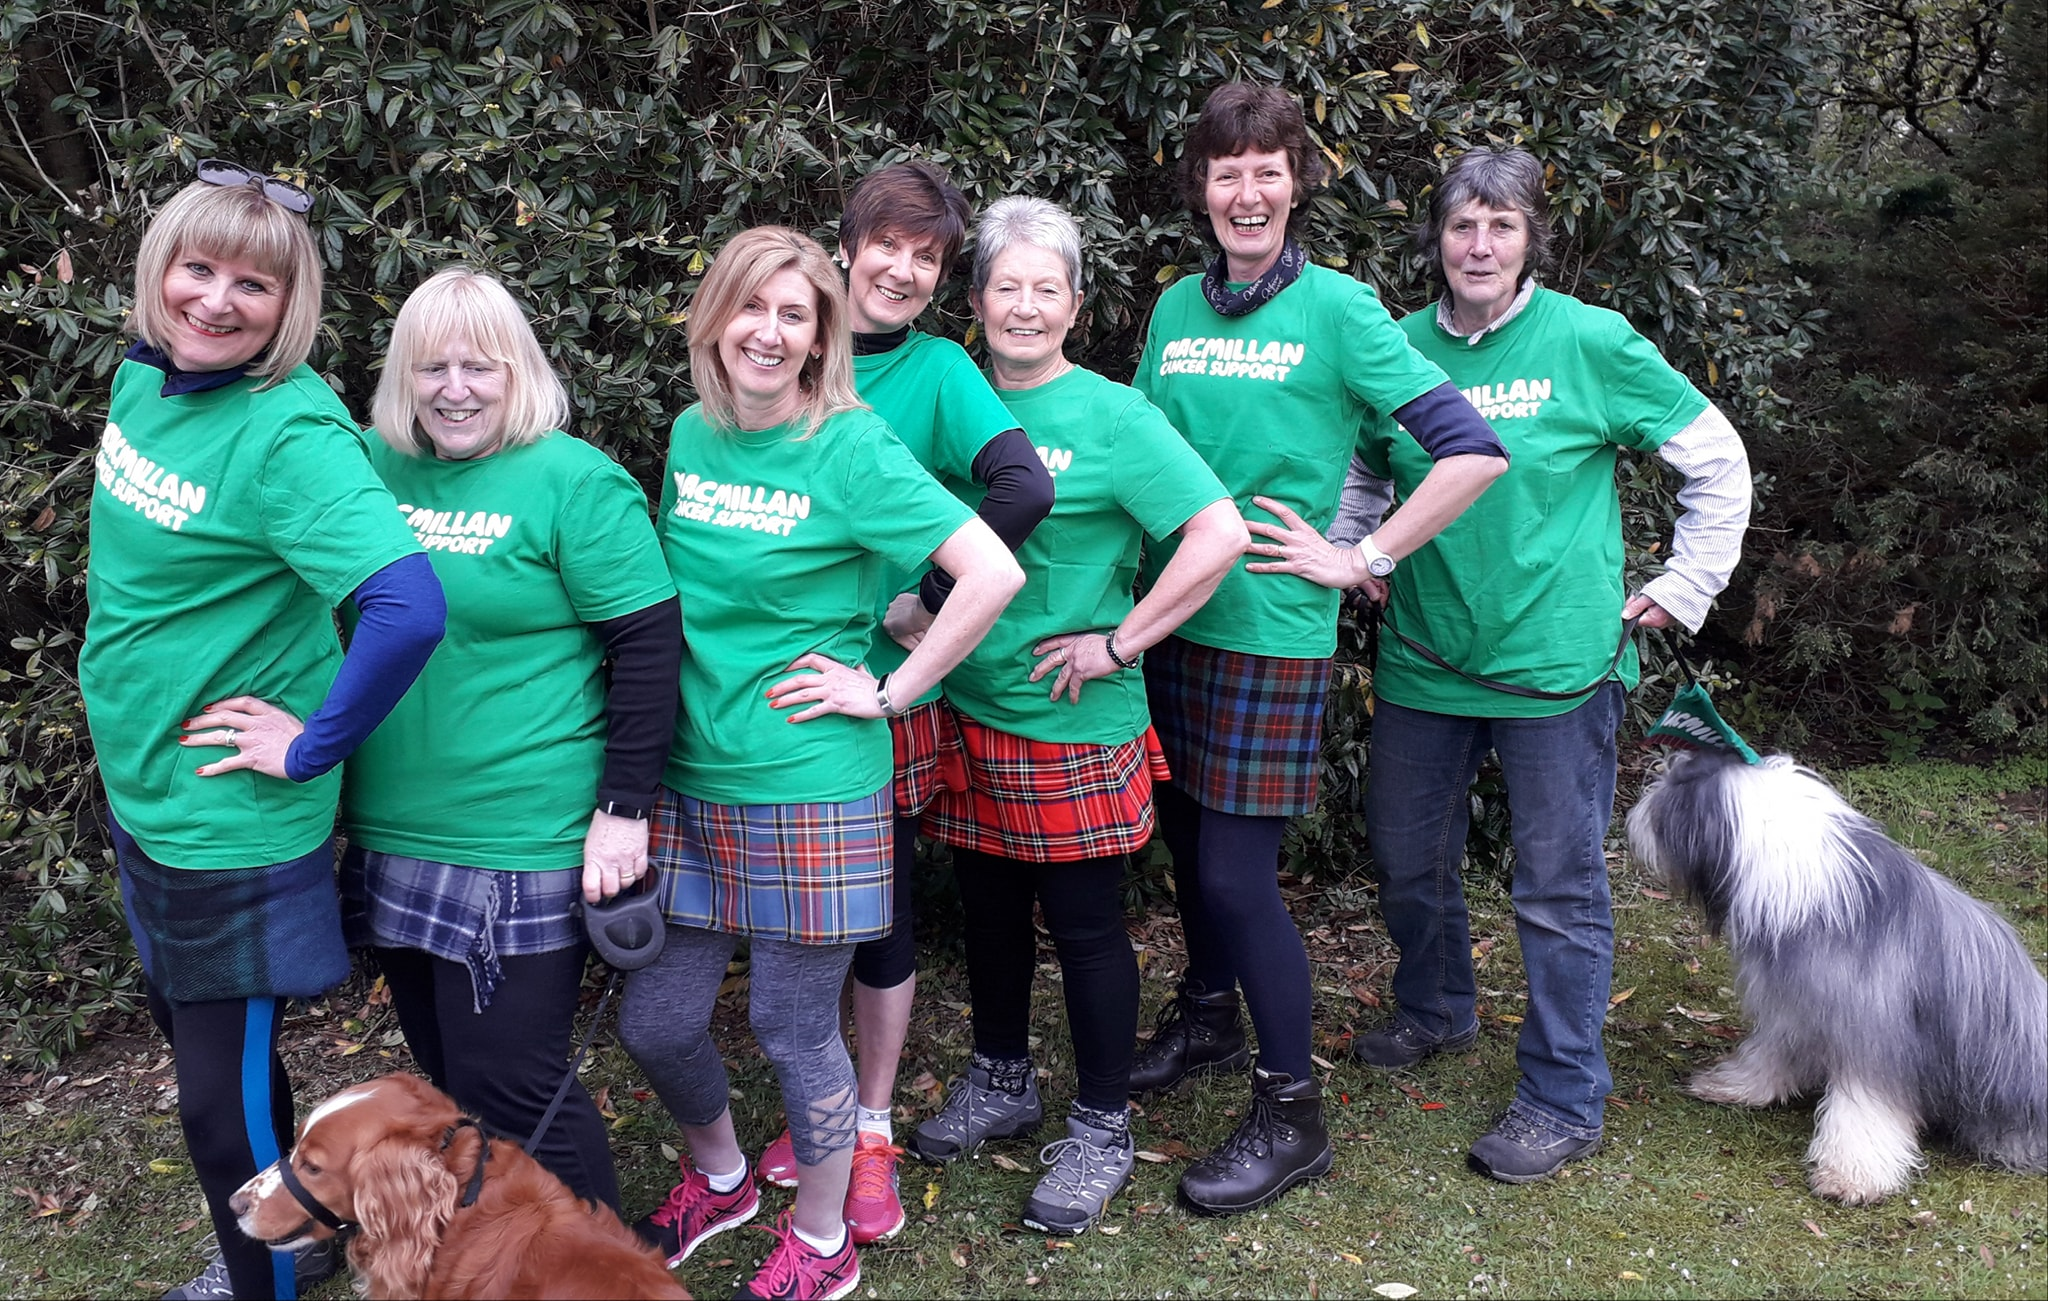 The Skene fundraising group have raised more than £310,000 for charity